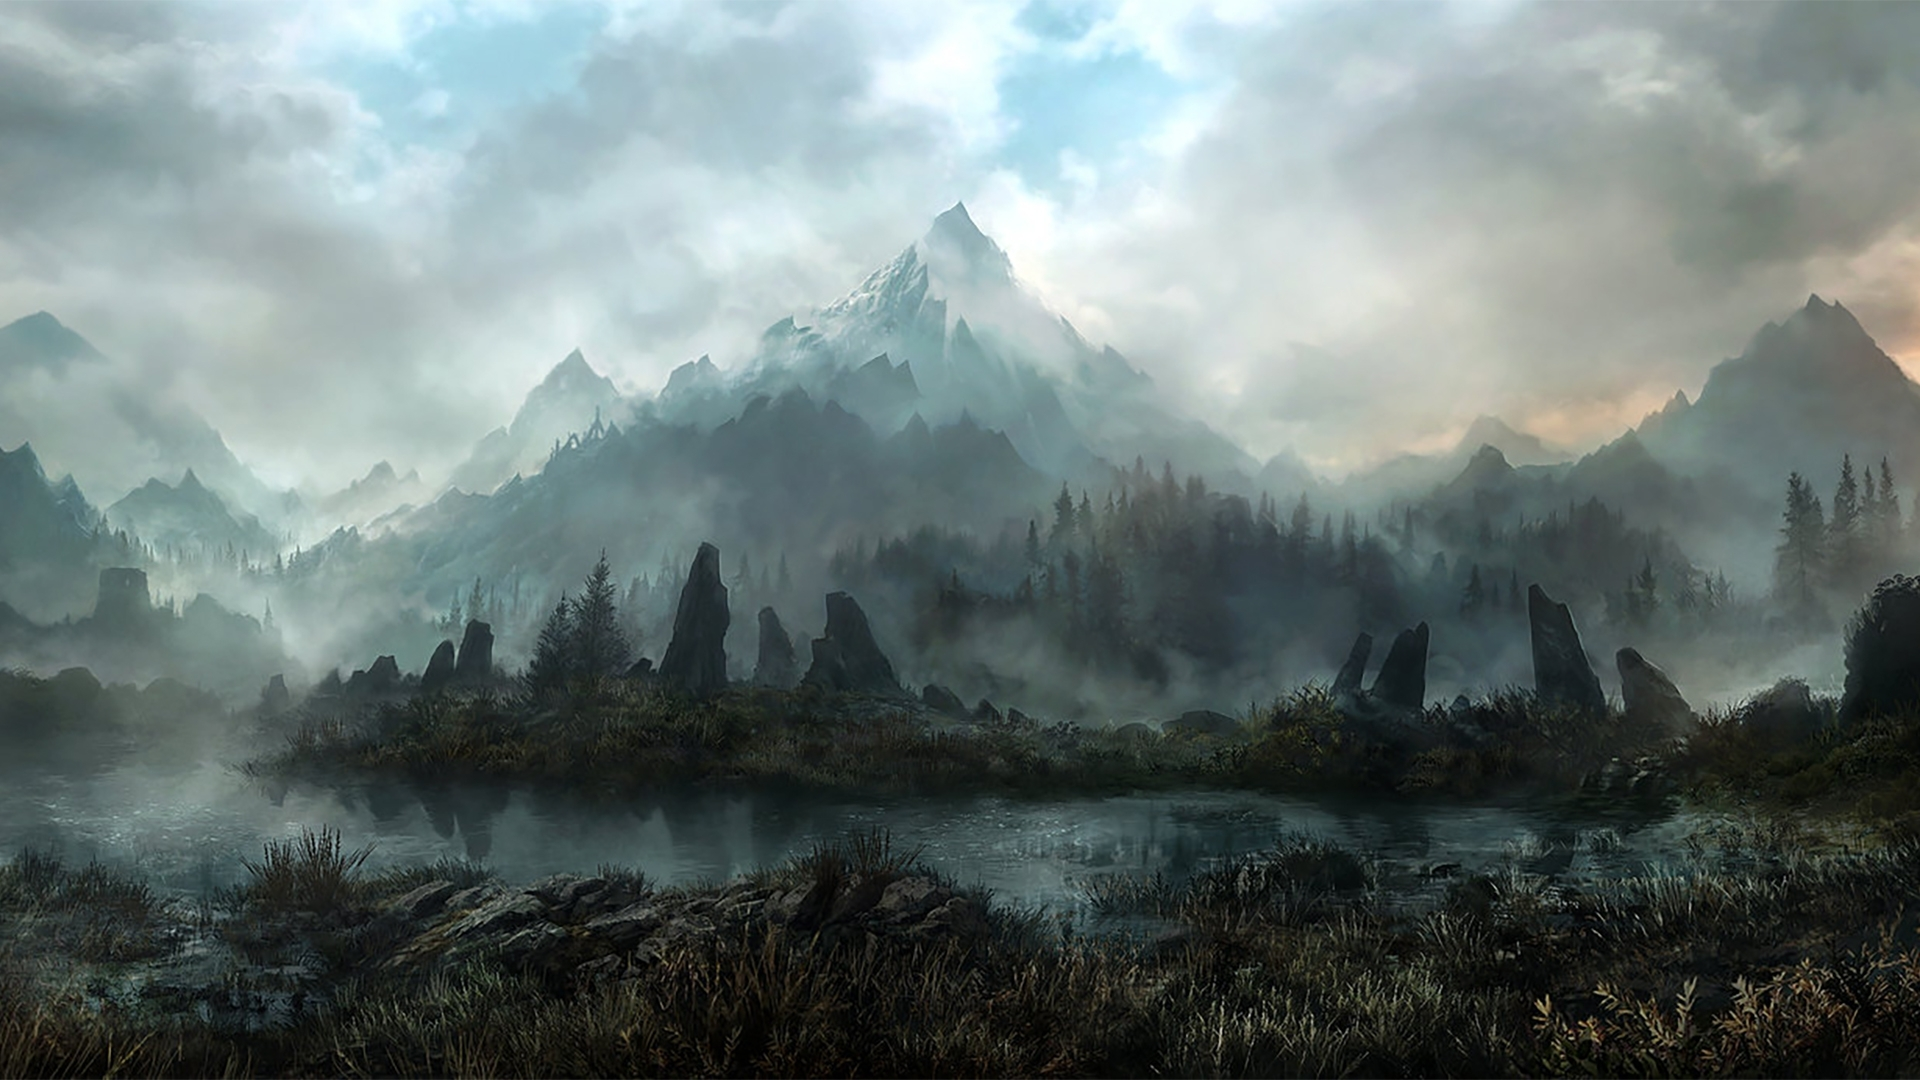 skyrim landscape hd wallpaper | 1920x1080 | id:47499